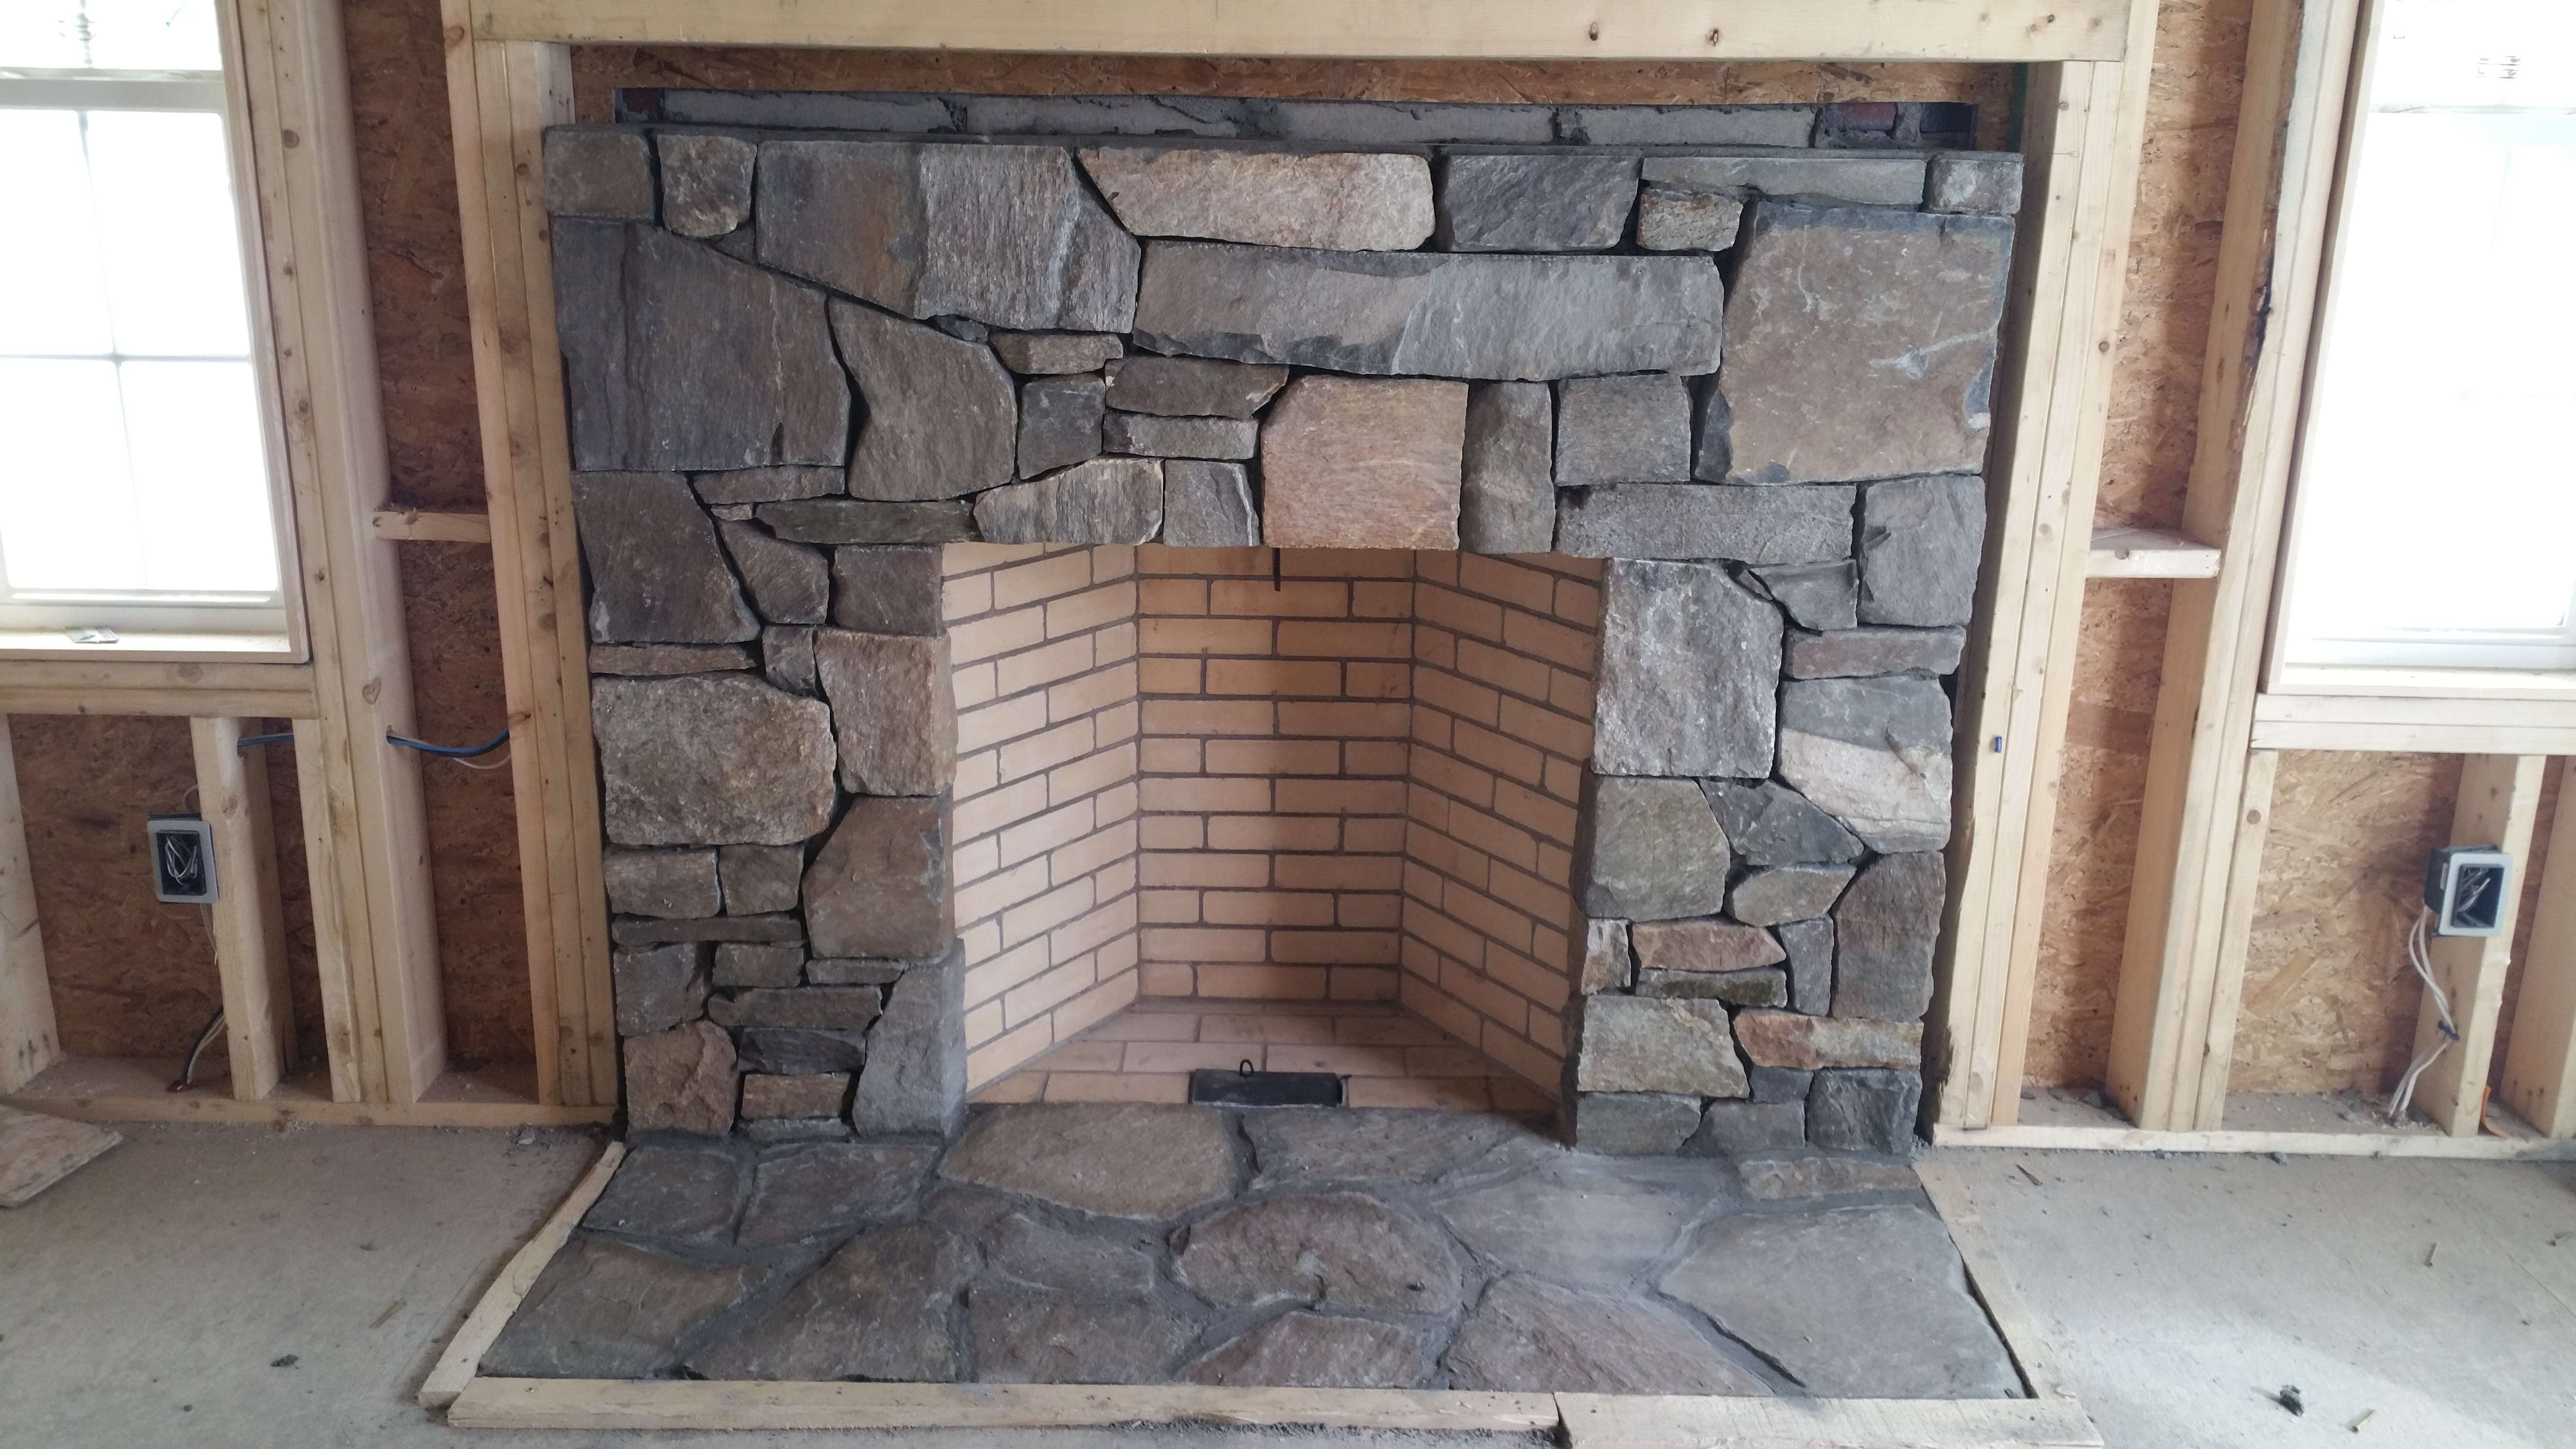 100 Count Rumford Fireplace Rumford Gas Fireplace